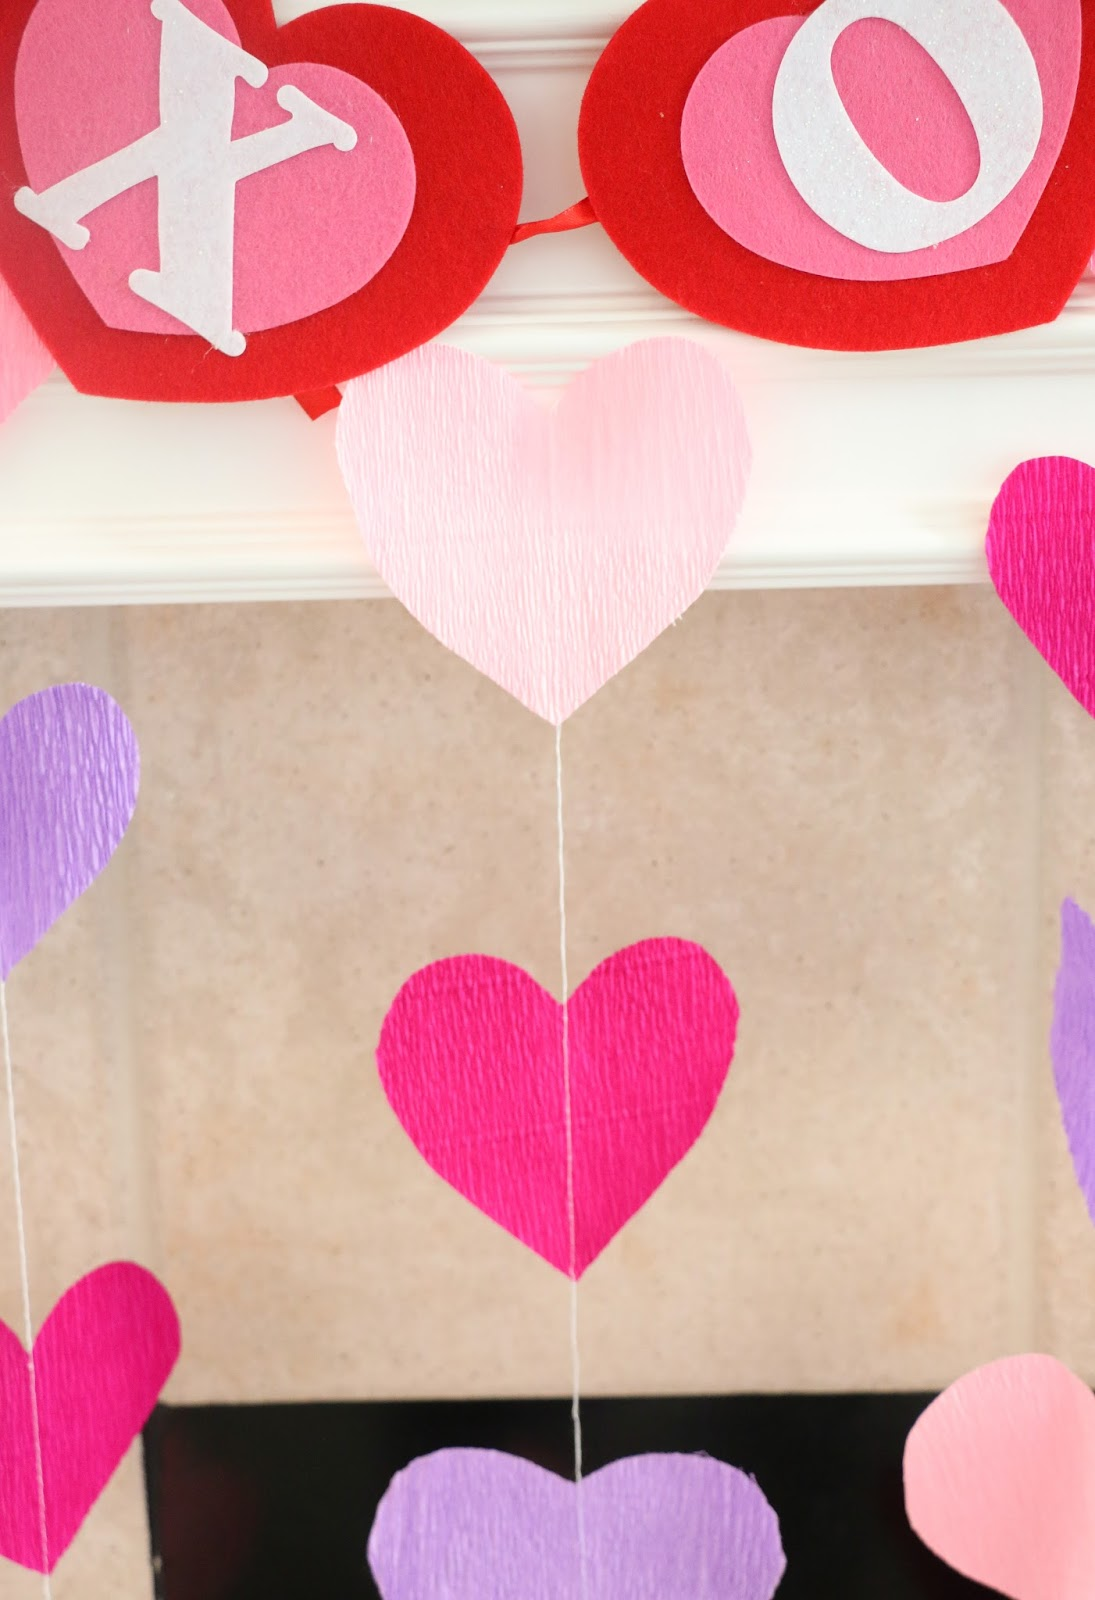 Diy It Crepe Paper Heart Decorations A Kailo Chic Life